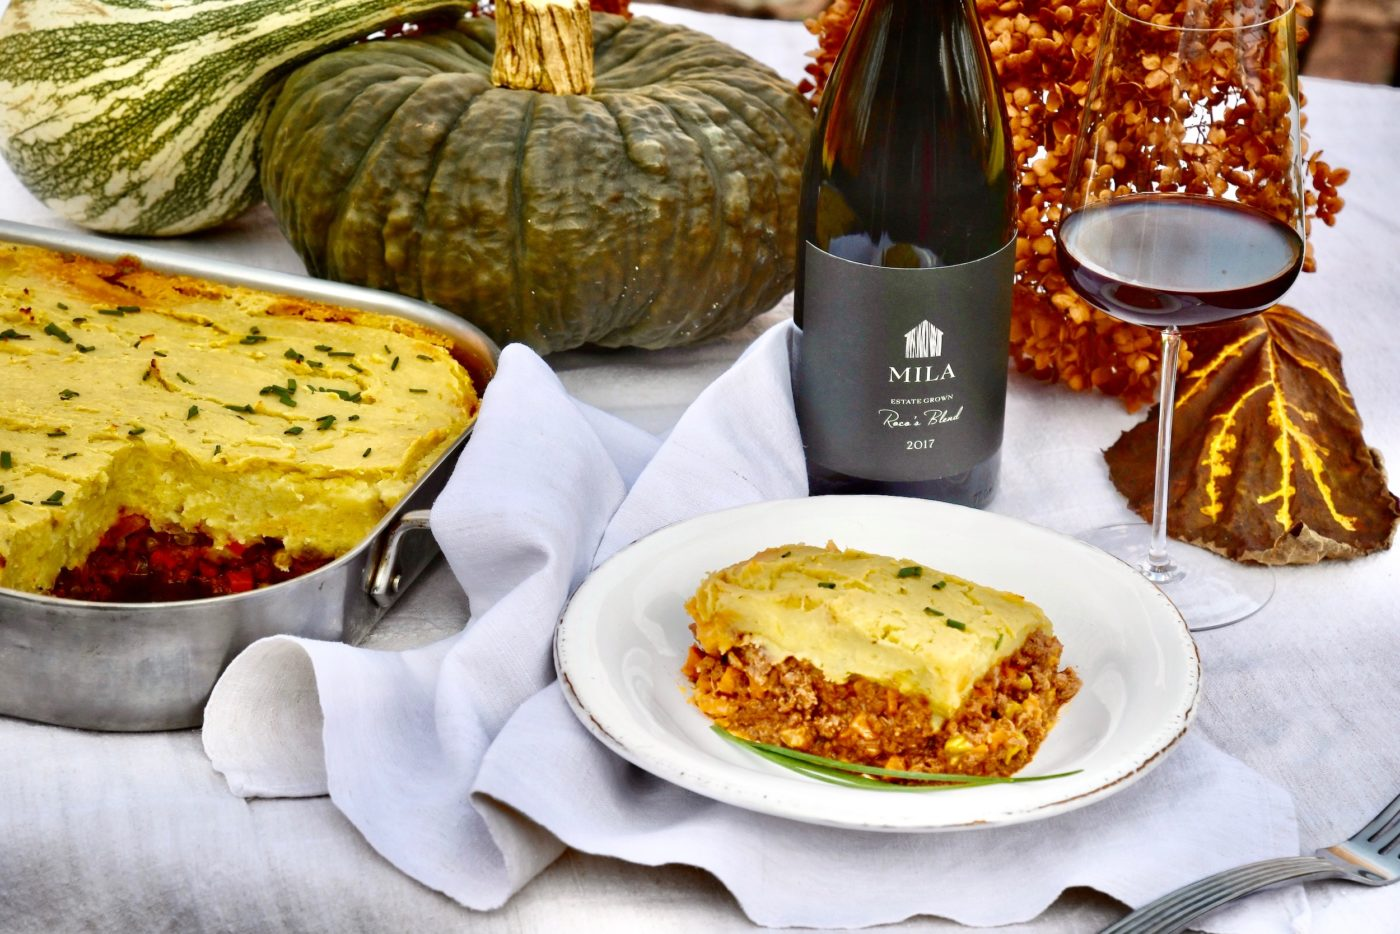 shepherd's pie on table with squash, wine